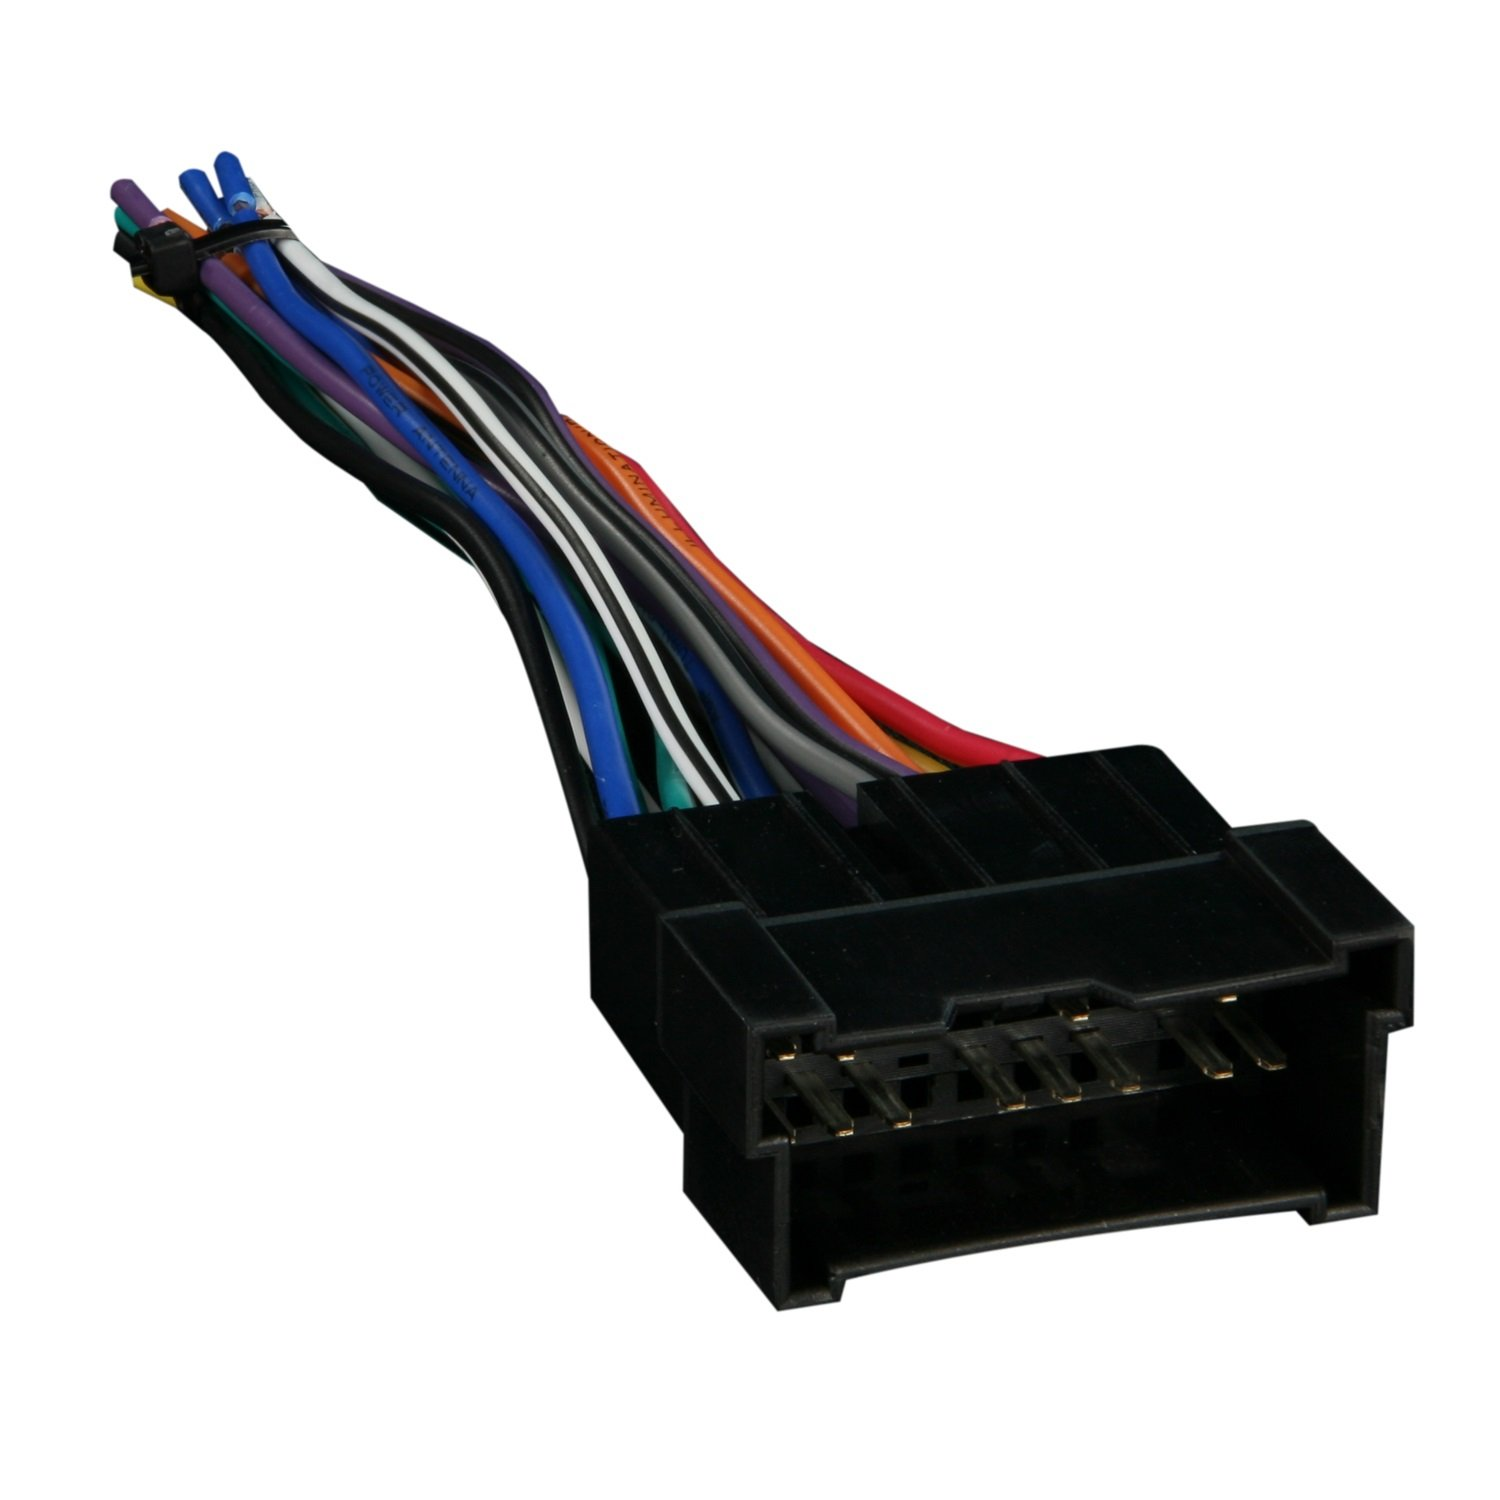 617yeBmOquL._SL1500_ amazon com metra 70 7301 radio wiring harness for hyundai kia 99 GM Factory Radio Wiring Harness at cita.asia